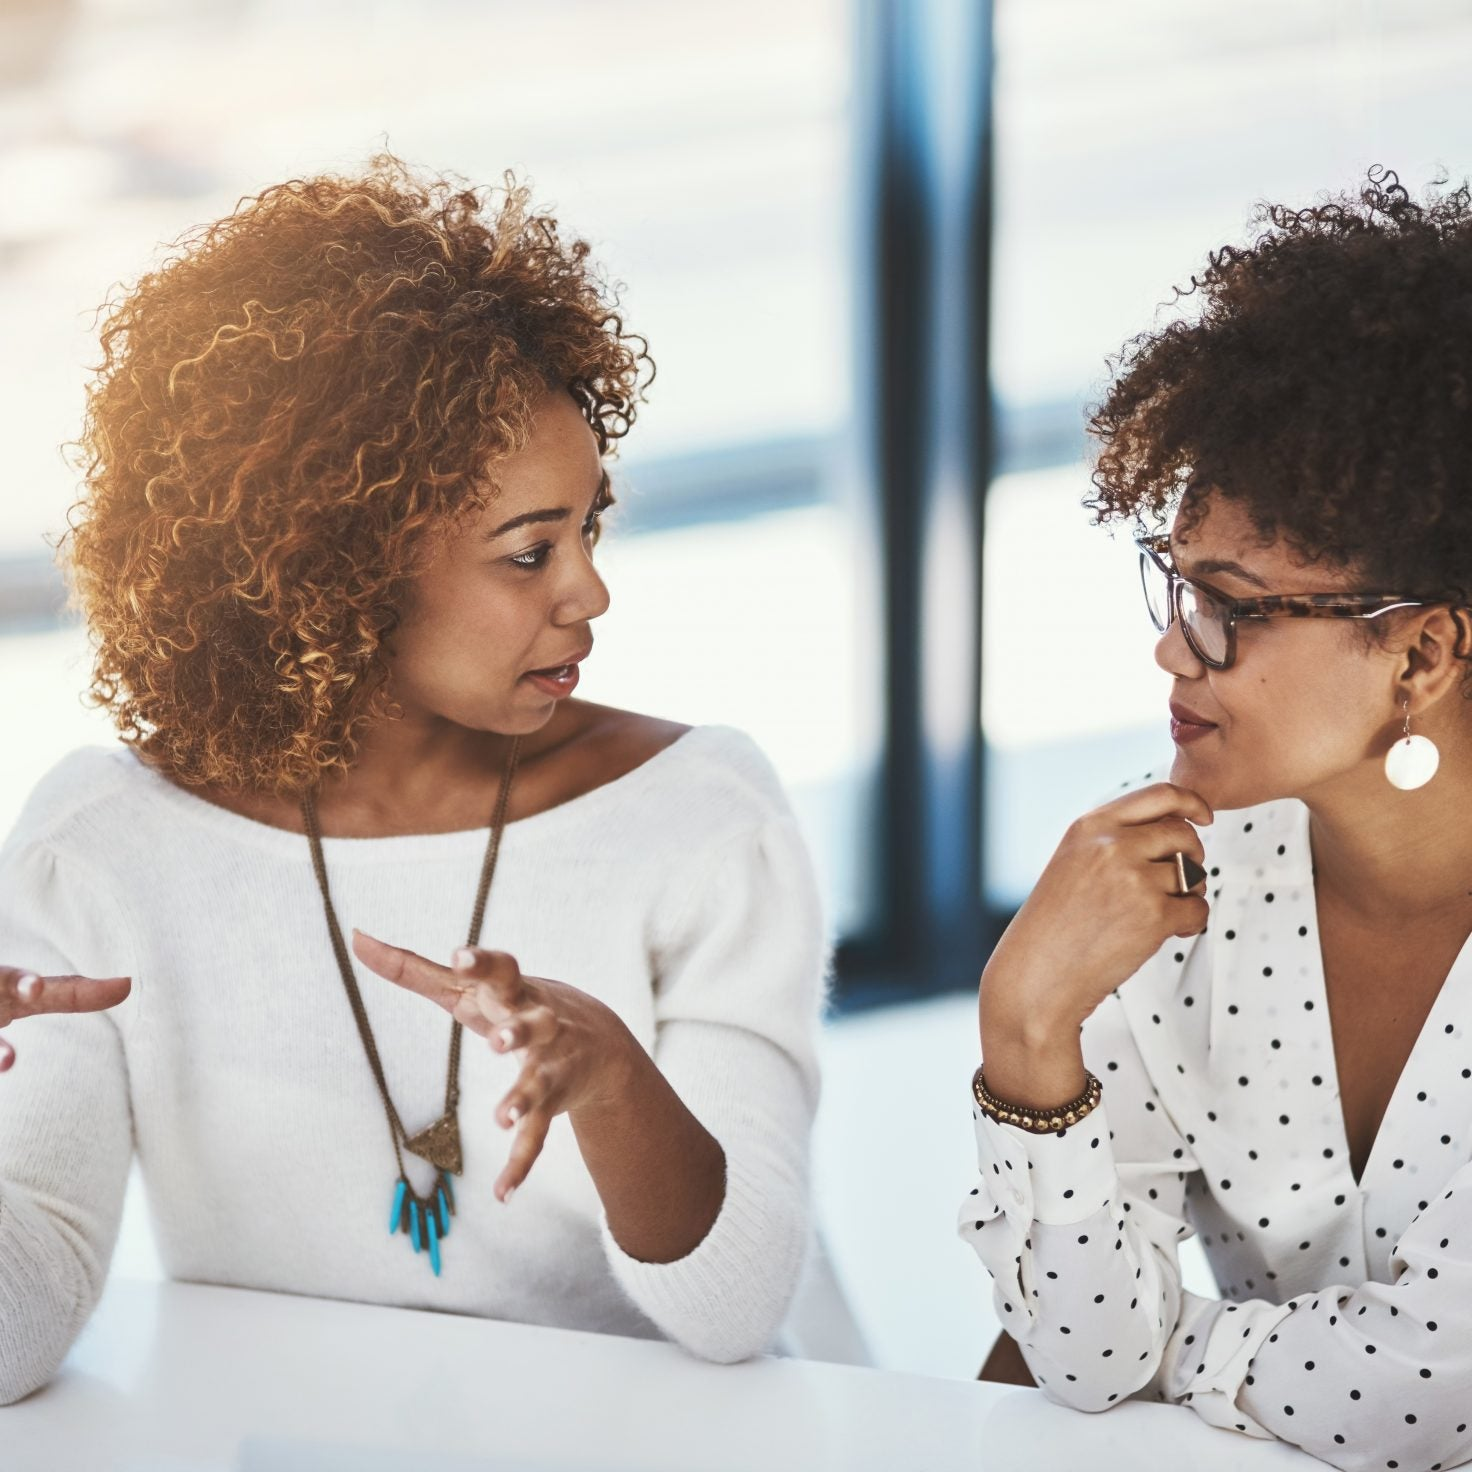 It's Time To Build Lasting Power for Black Women